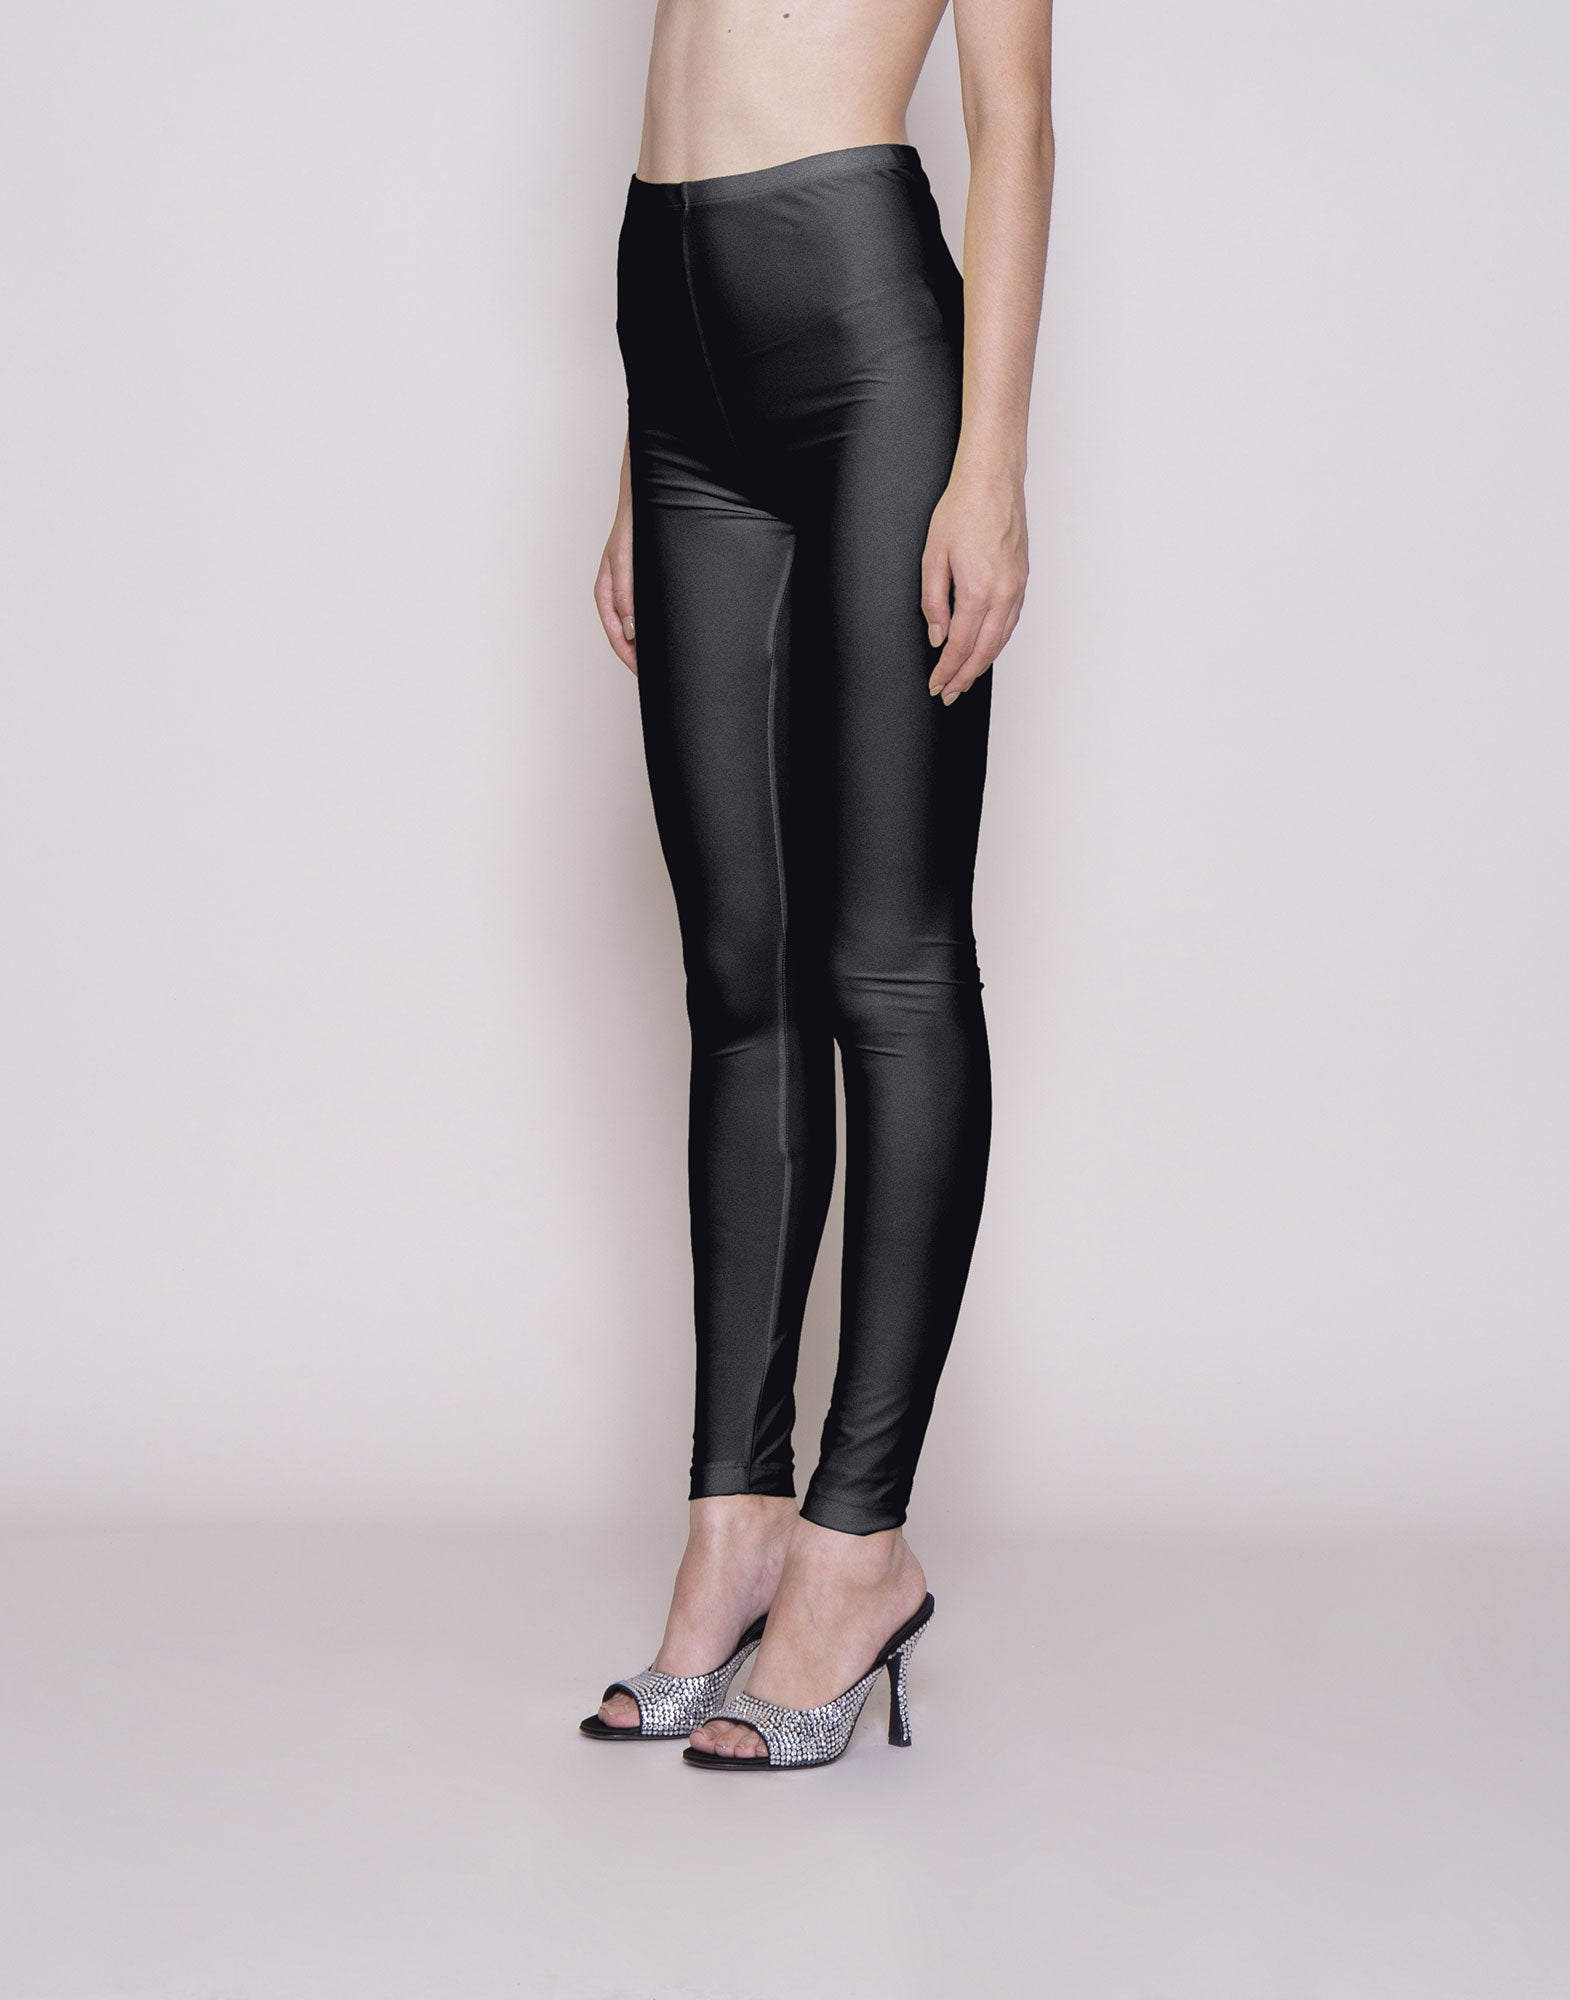 Black Lycra leggings